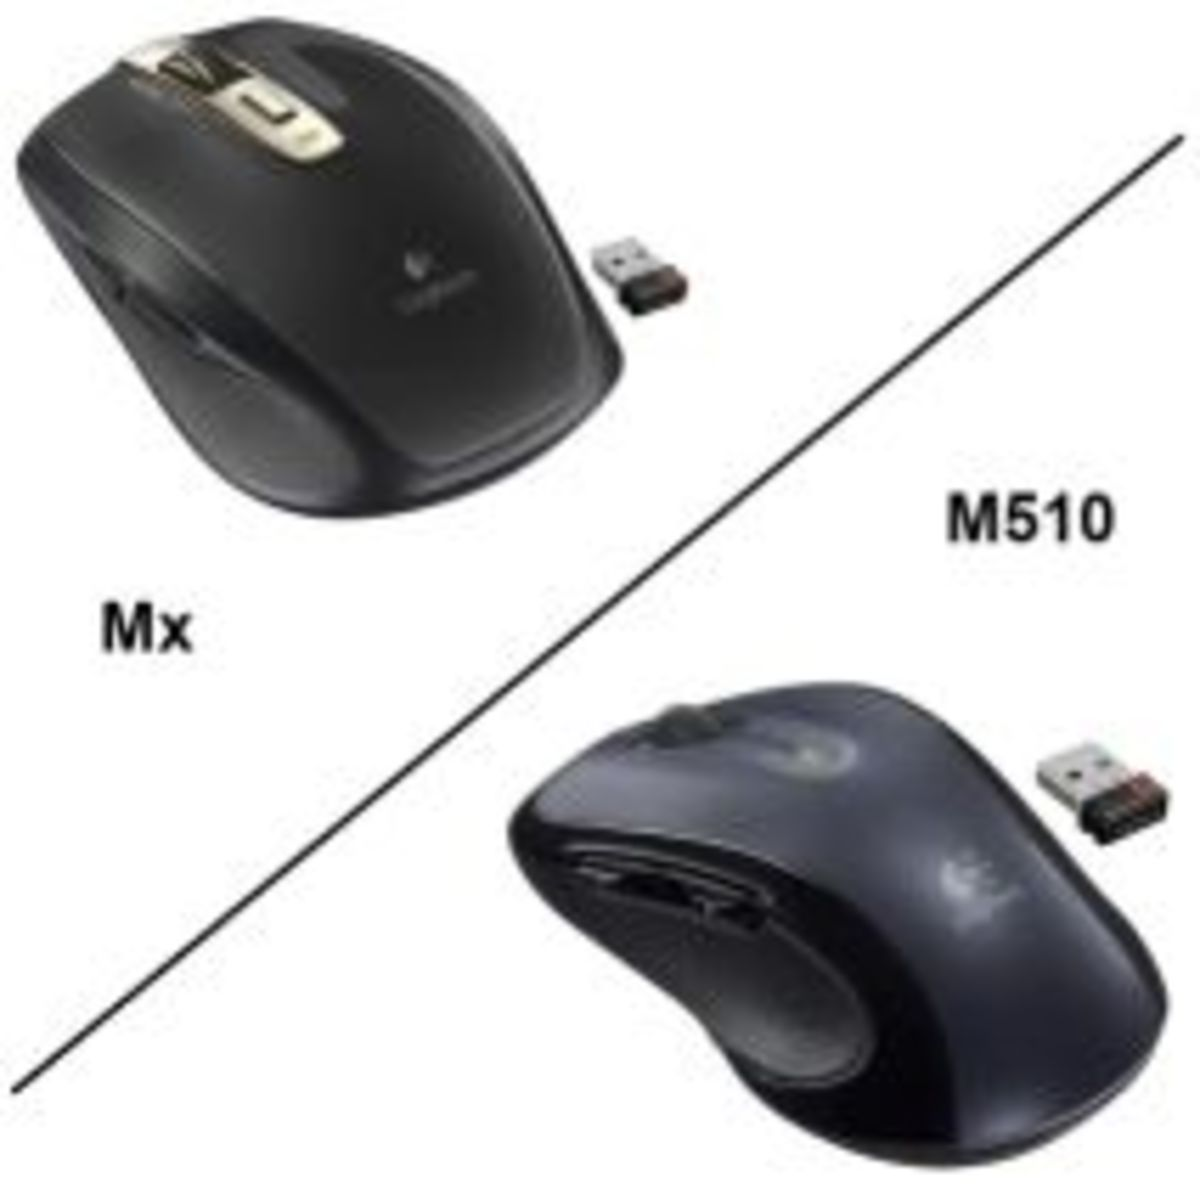 Logitech M510 Wireless Mouse VS Logitech Wireless Anywhere Mouse MX: Which Is Better?